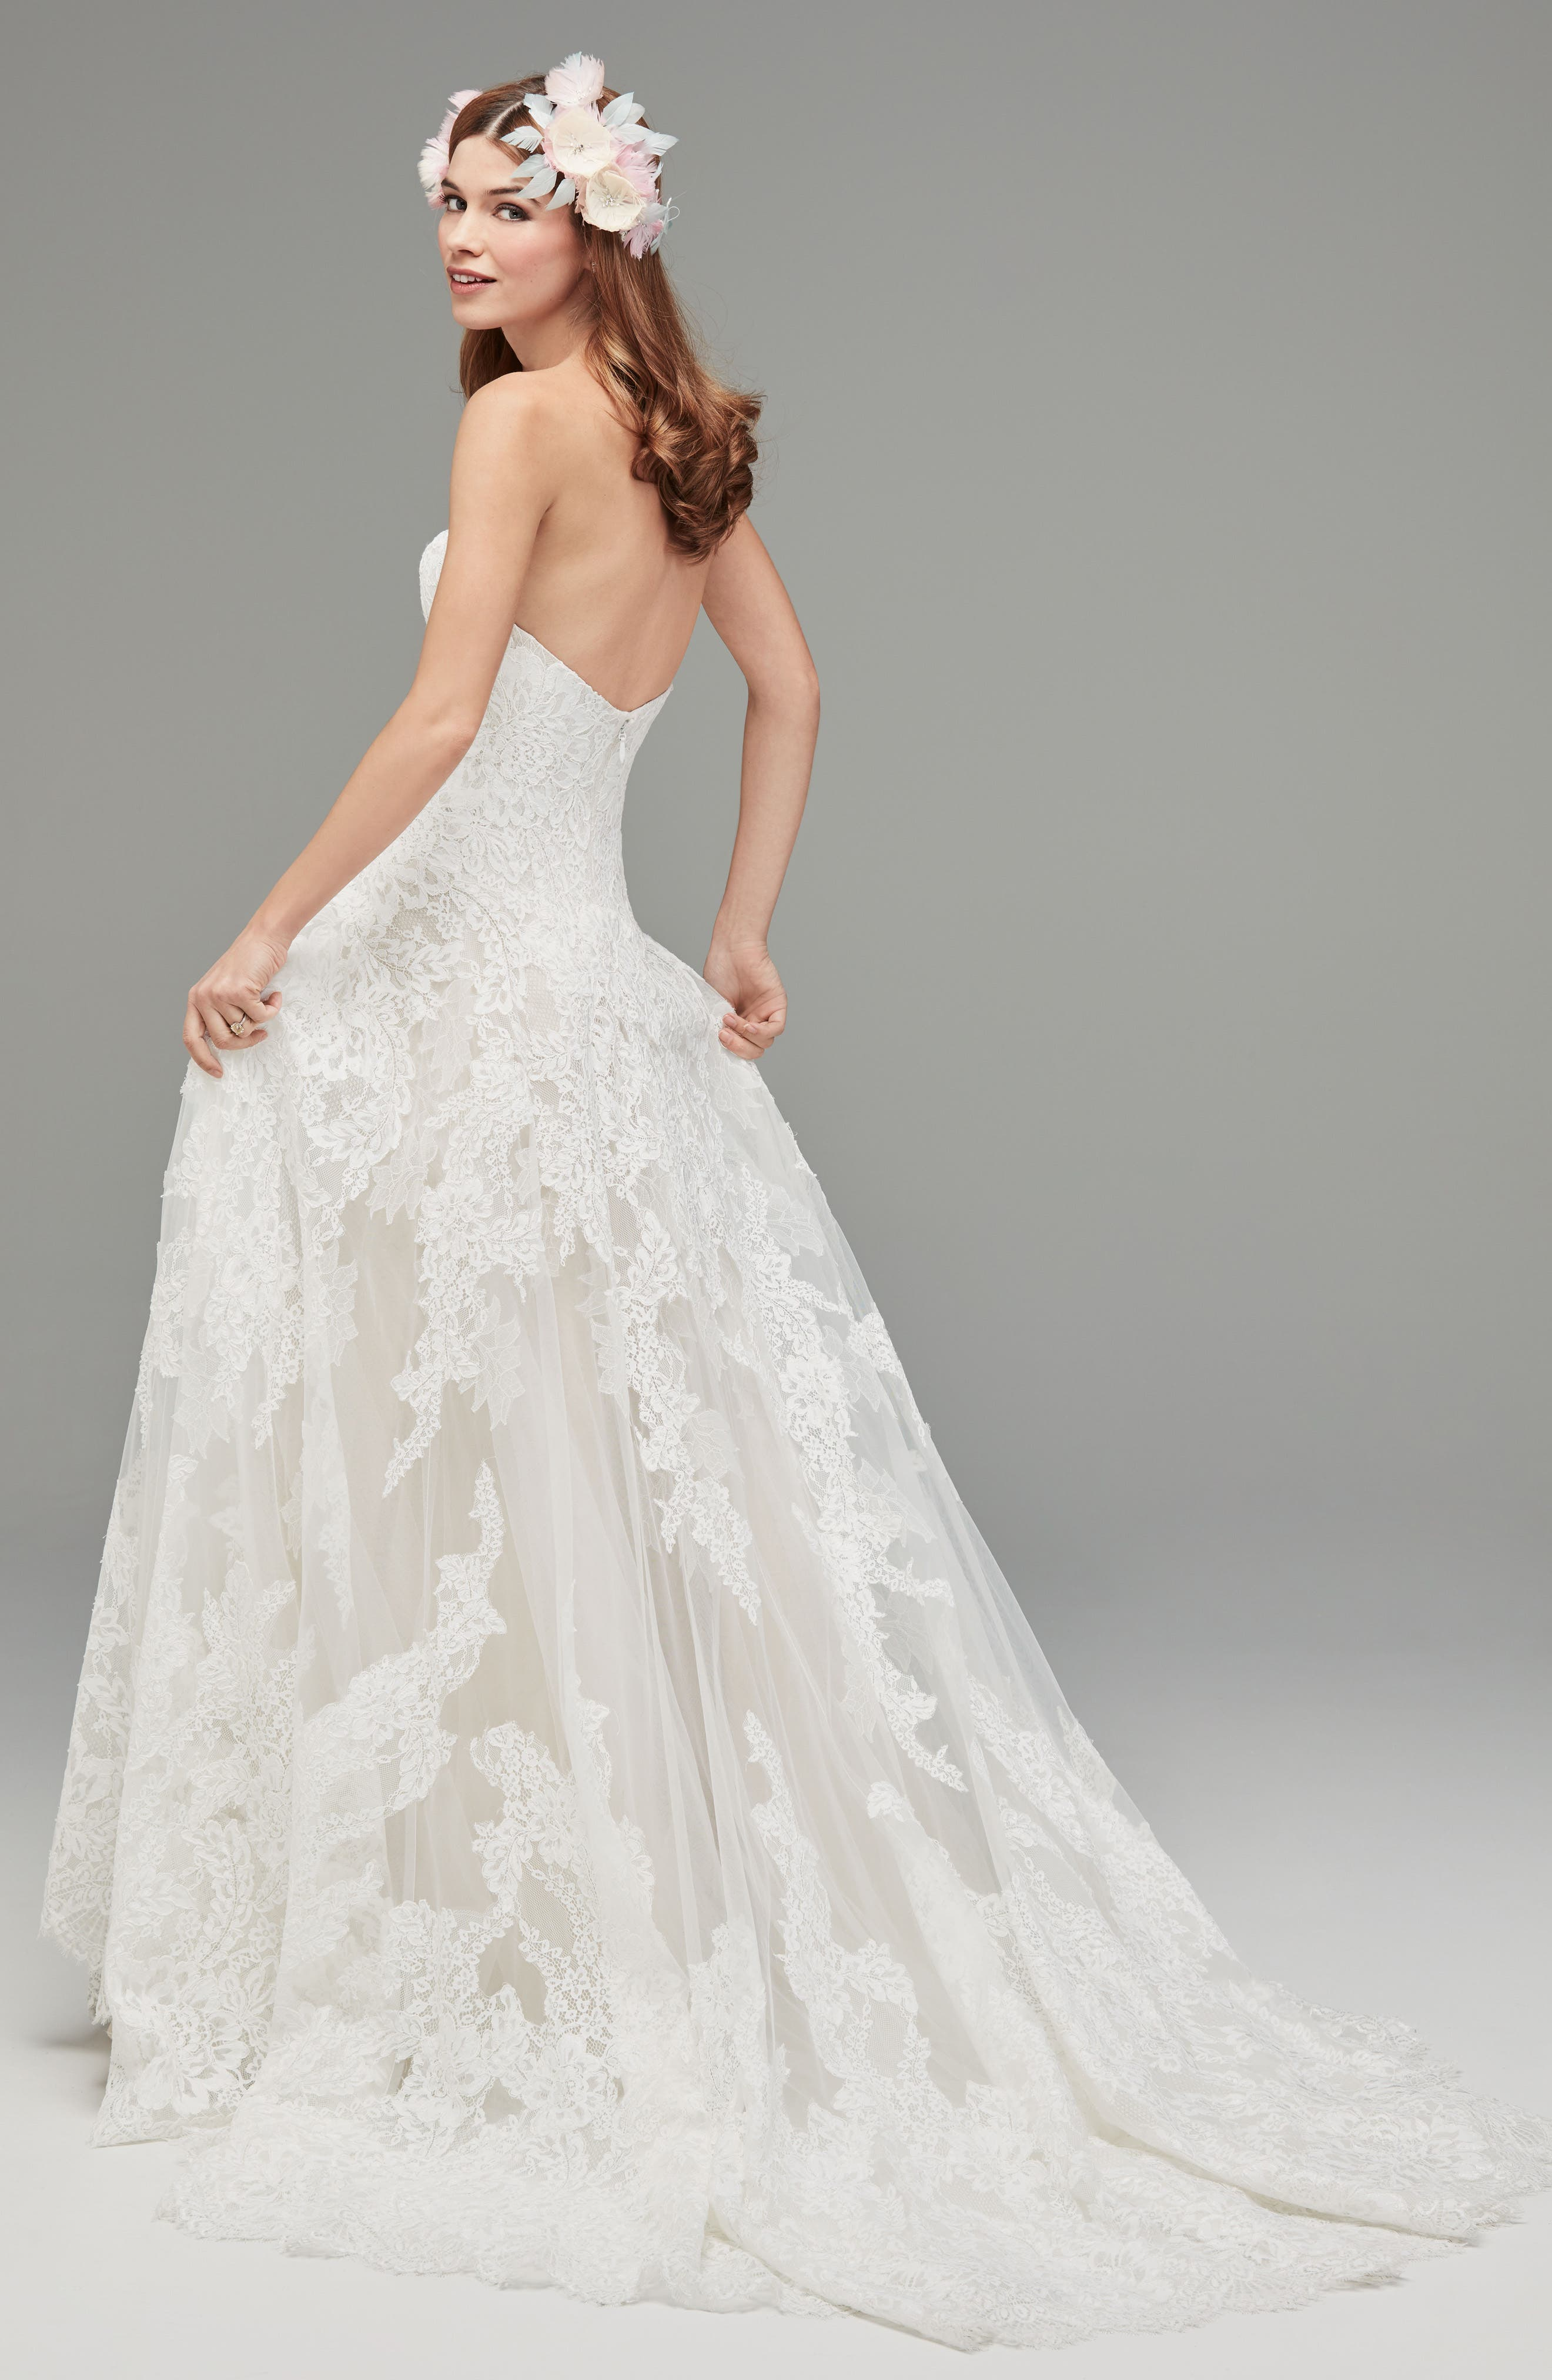 Lyric Strapless Lace Drop Waist Gown,                             Alternate thumbnail 2, color,                             IVORY/NUDE